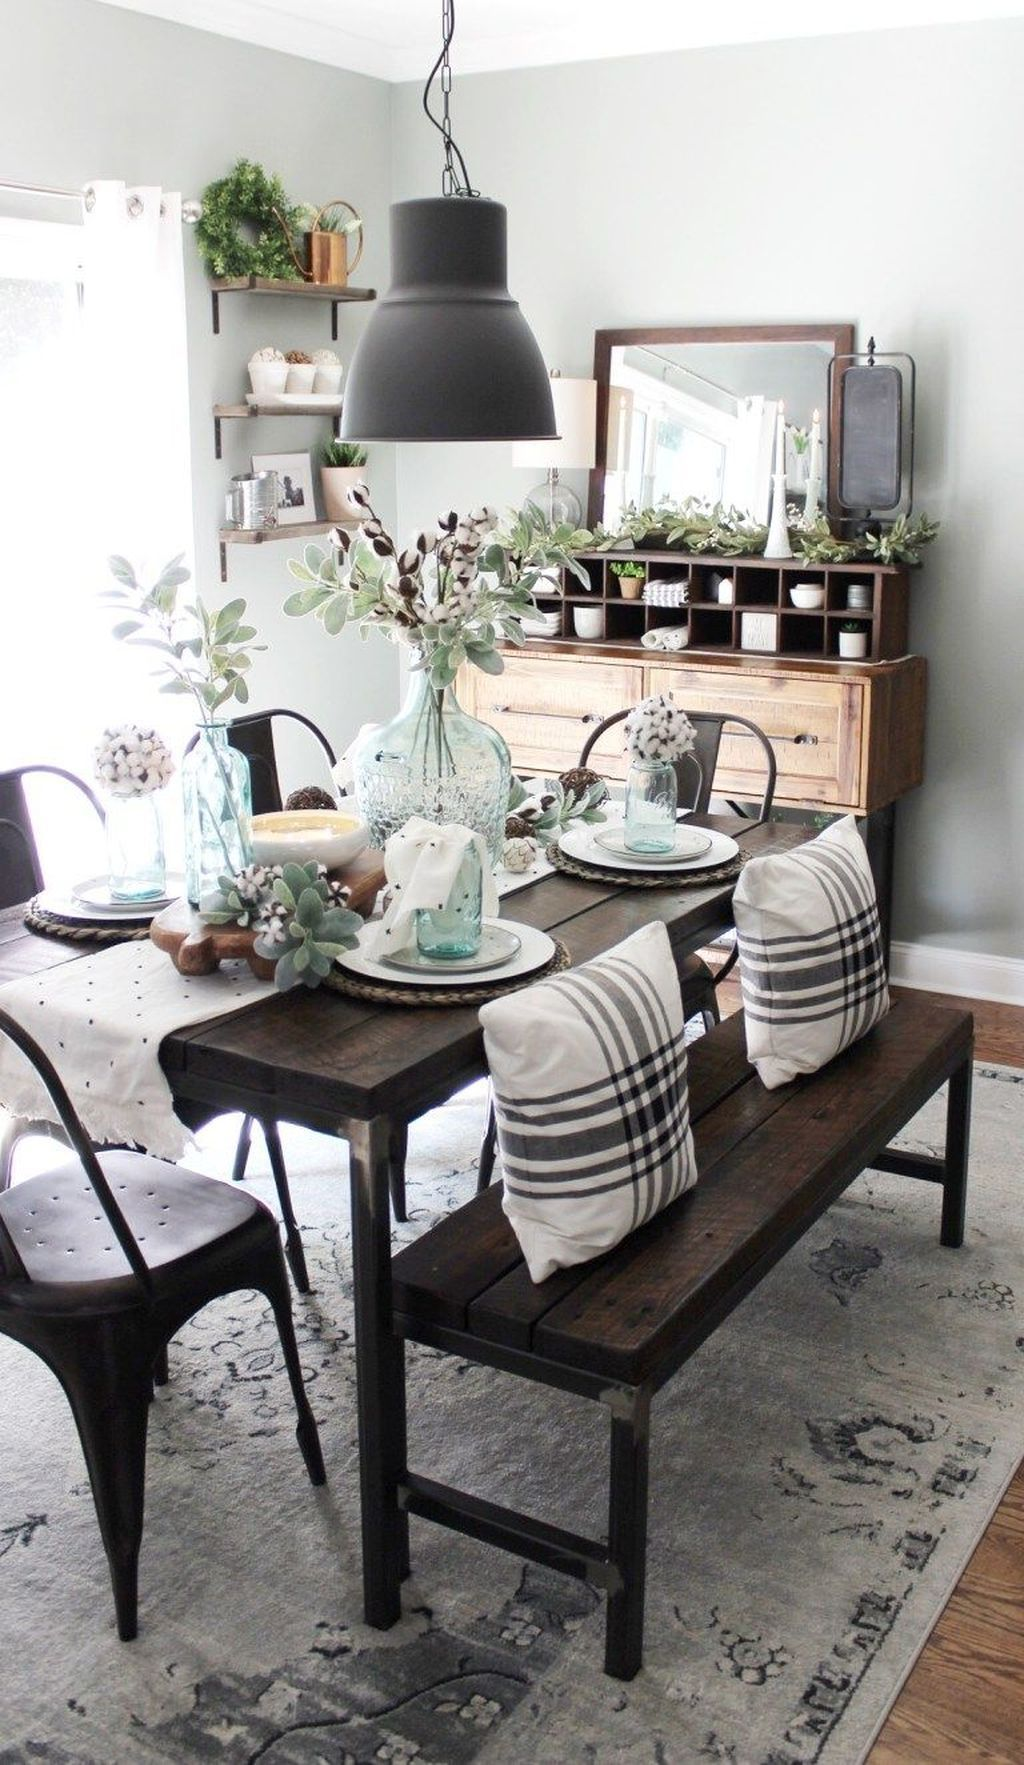 Popular Rustic Farmhouse Style Ideas For Dining Room Decor 26